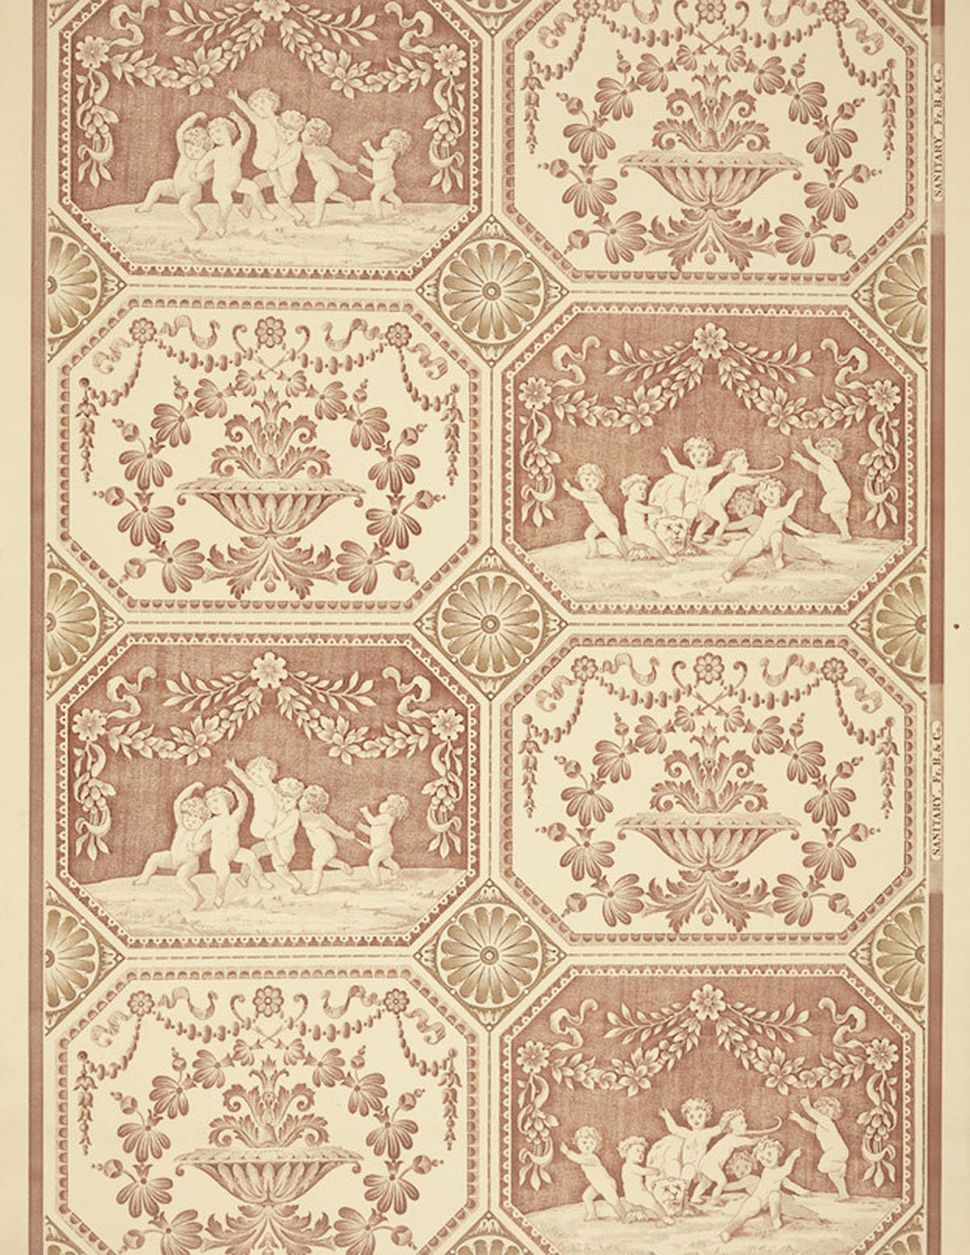 Unused sample. Panel with swags and cherubs frolicking with a lioness, alternating with a panel with an urn. Printed in rust